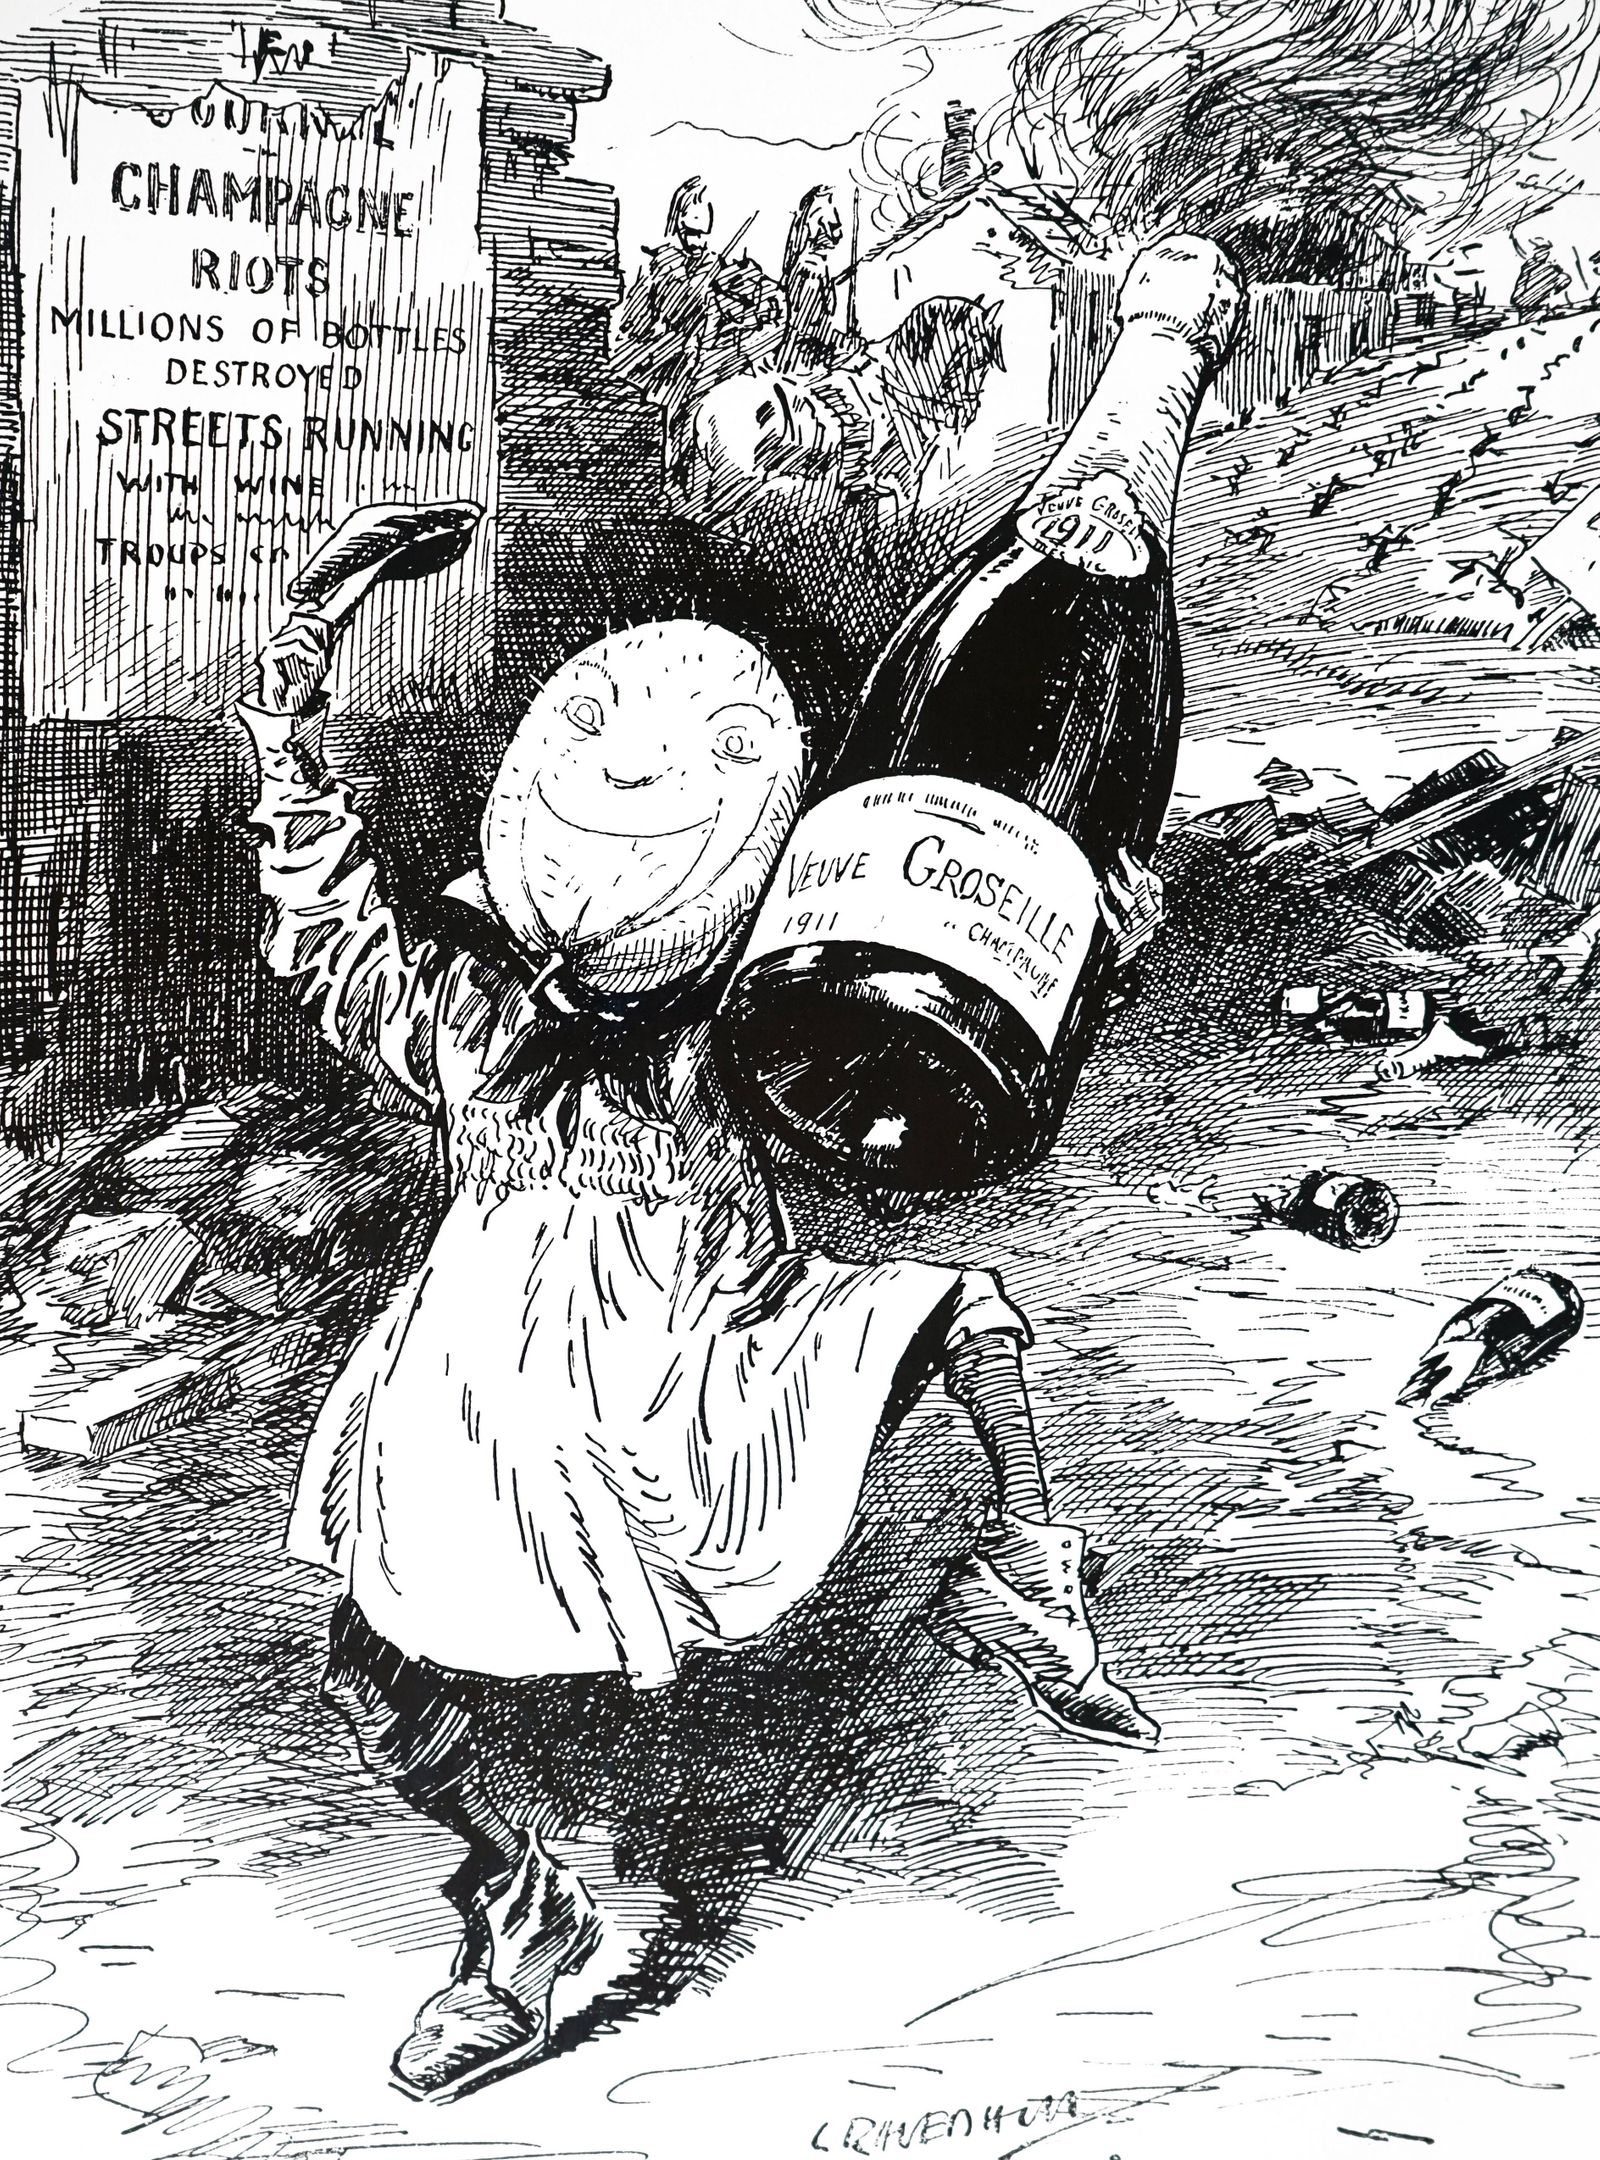 Cartoon depicting the riots in the French Champagne region The Champagne Riots of 1910 and 1911 res